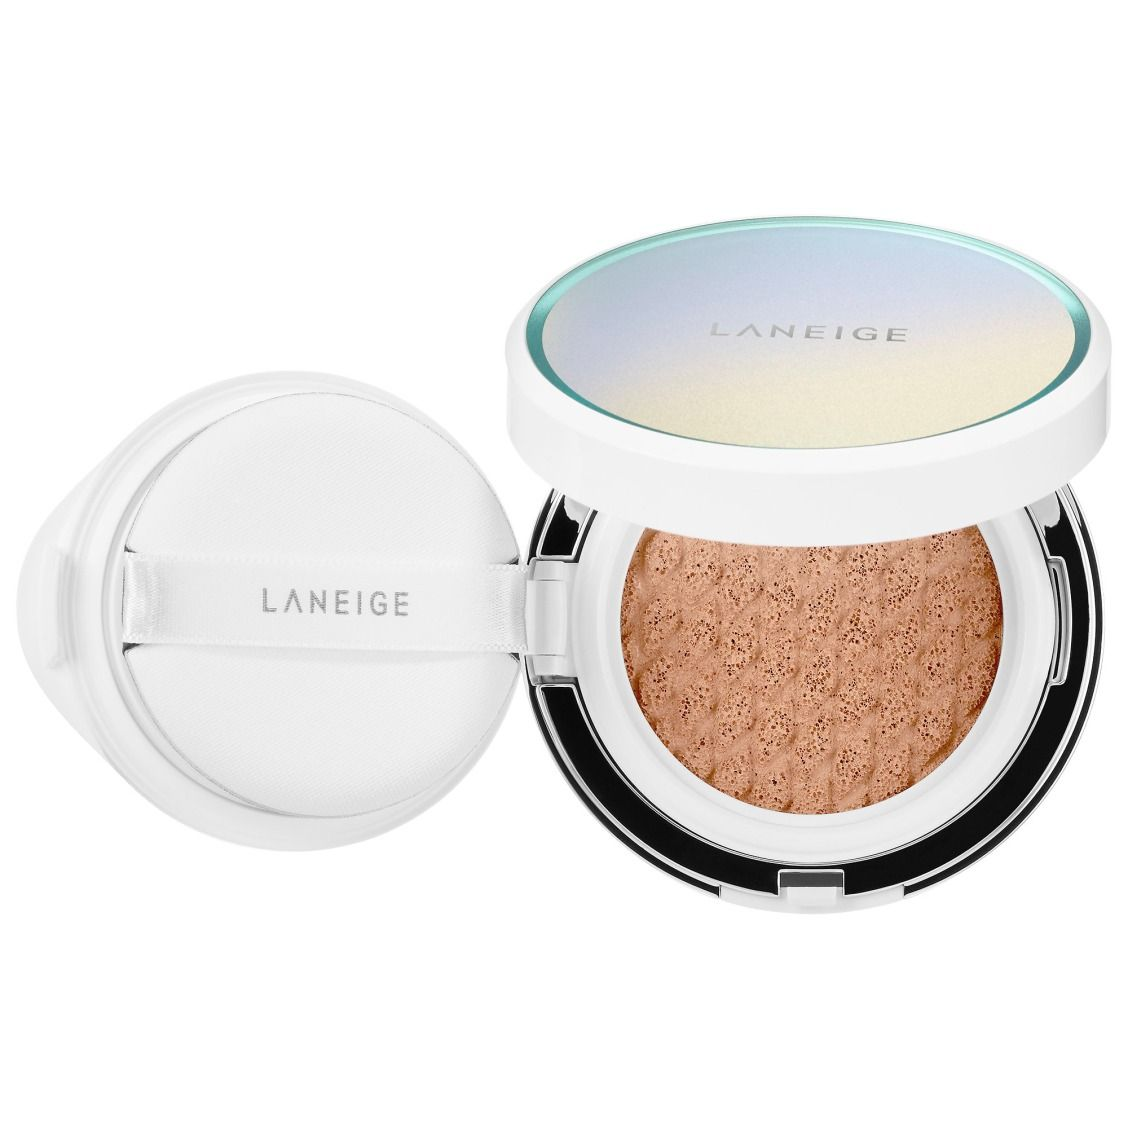 Image result for Laneige New BB Cushion Pore Control 15g+Refill 15g SPF50+ PA+++